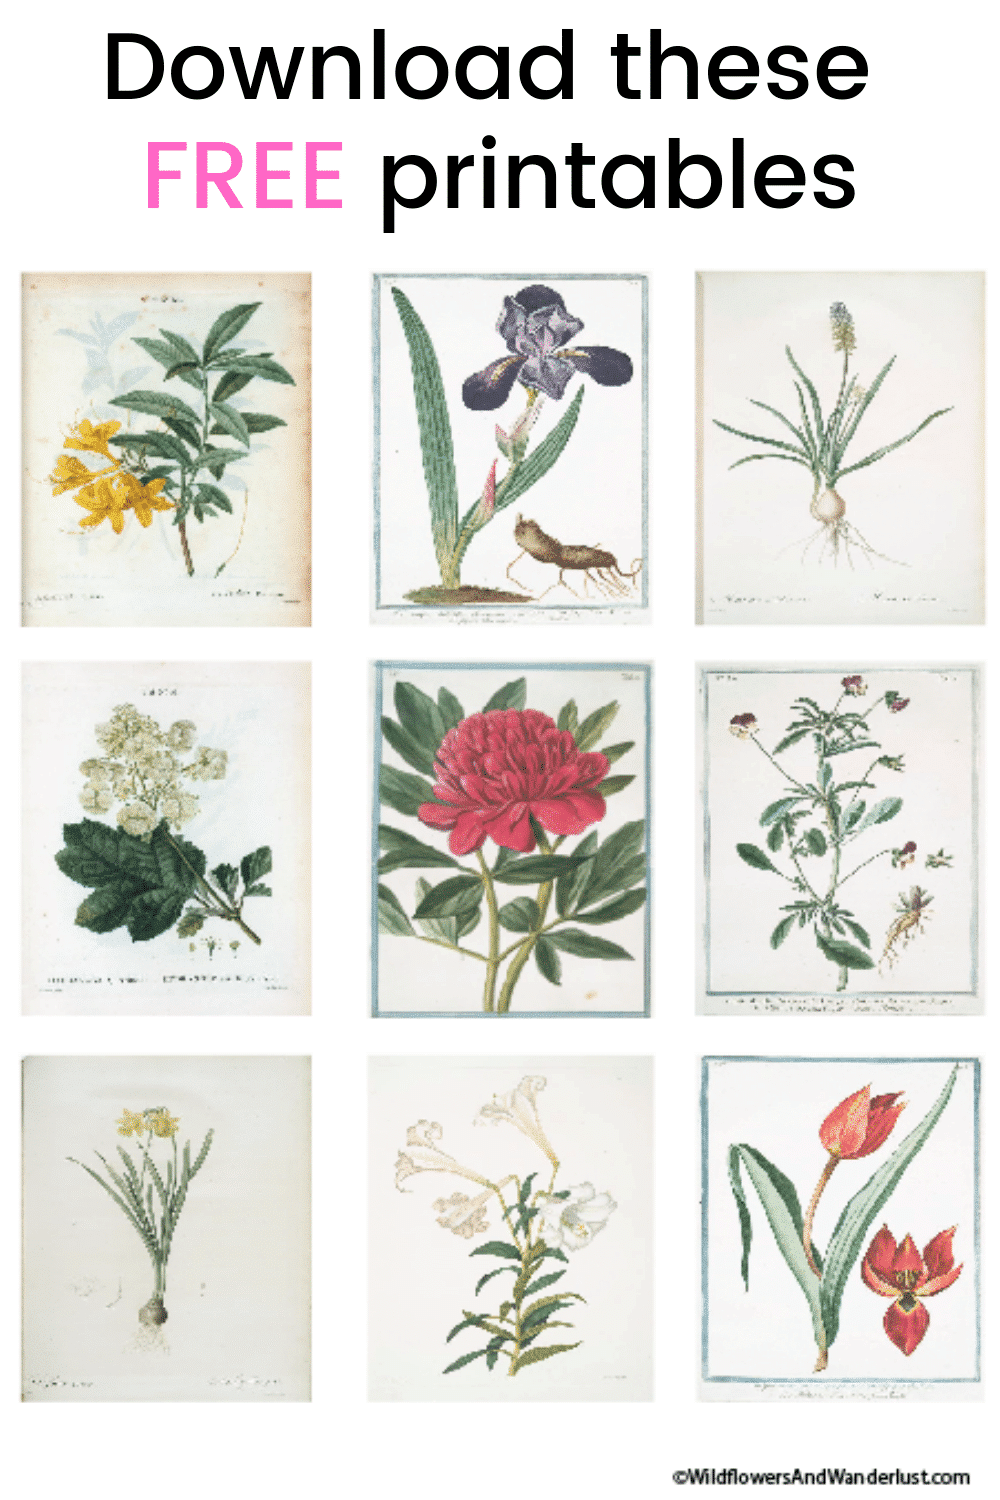 Free Botanical Printables for Spring by WildflowersAndWanderlust.com